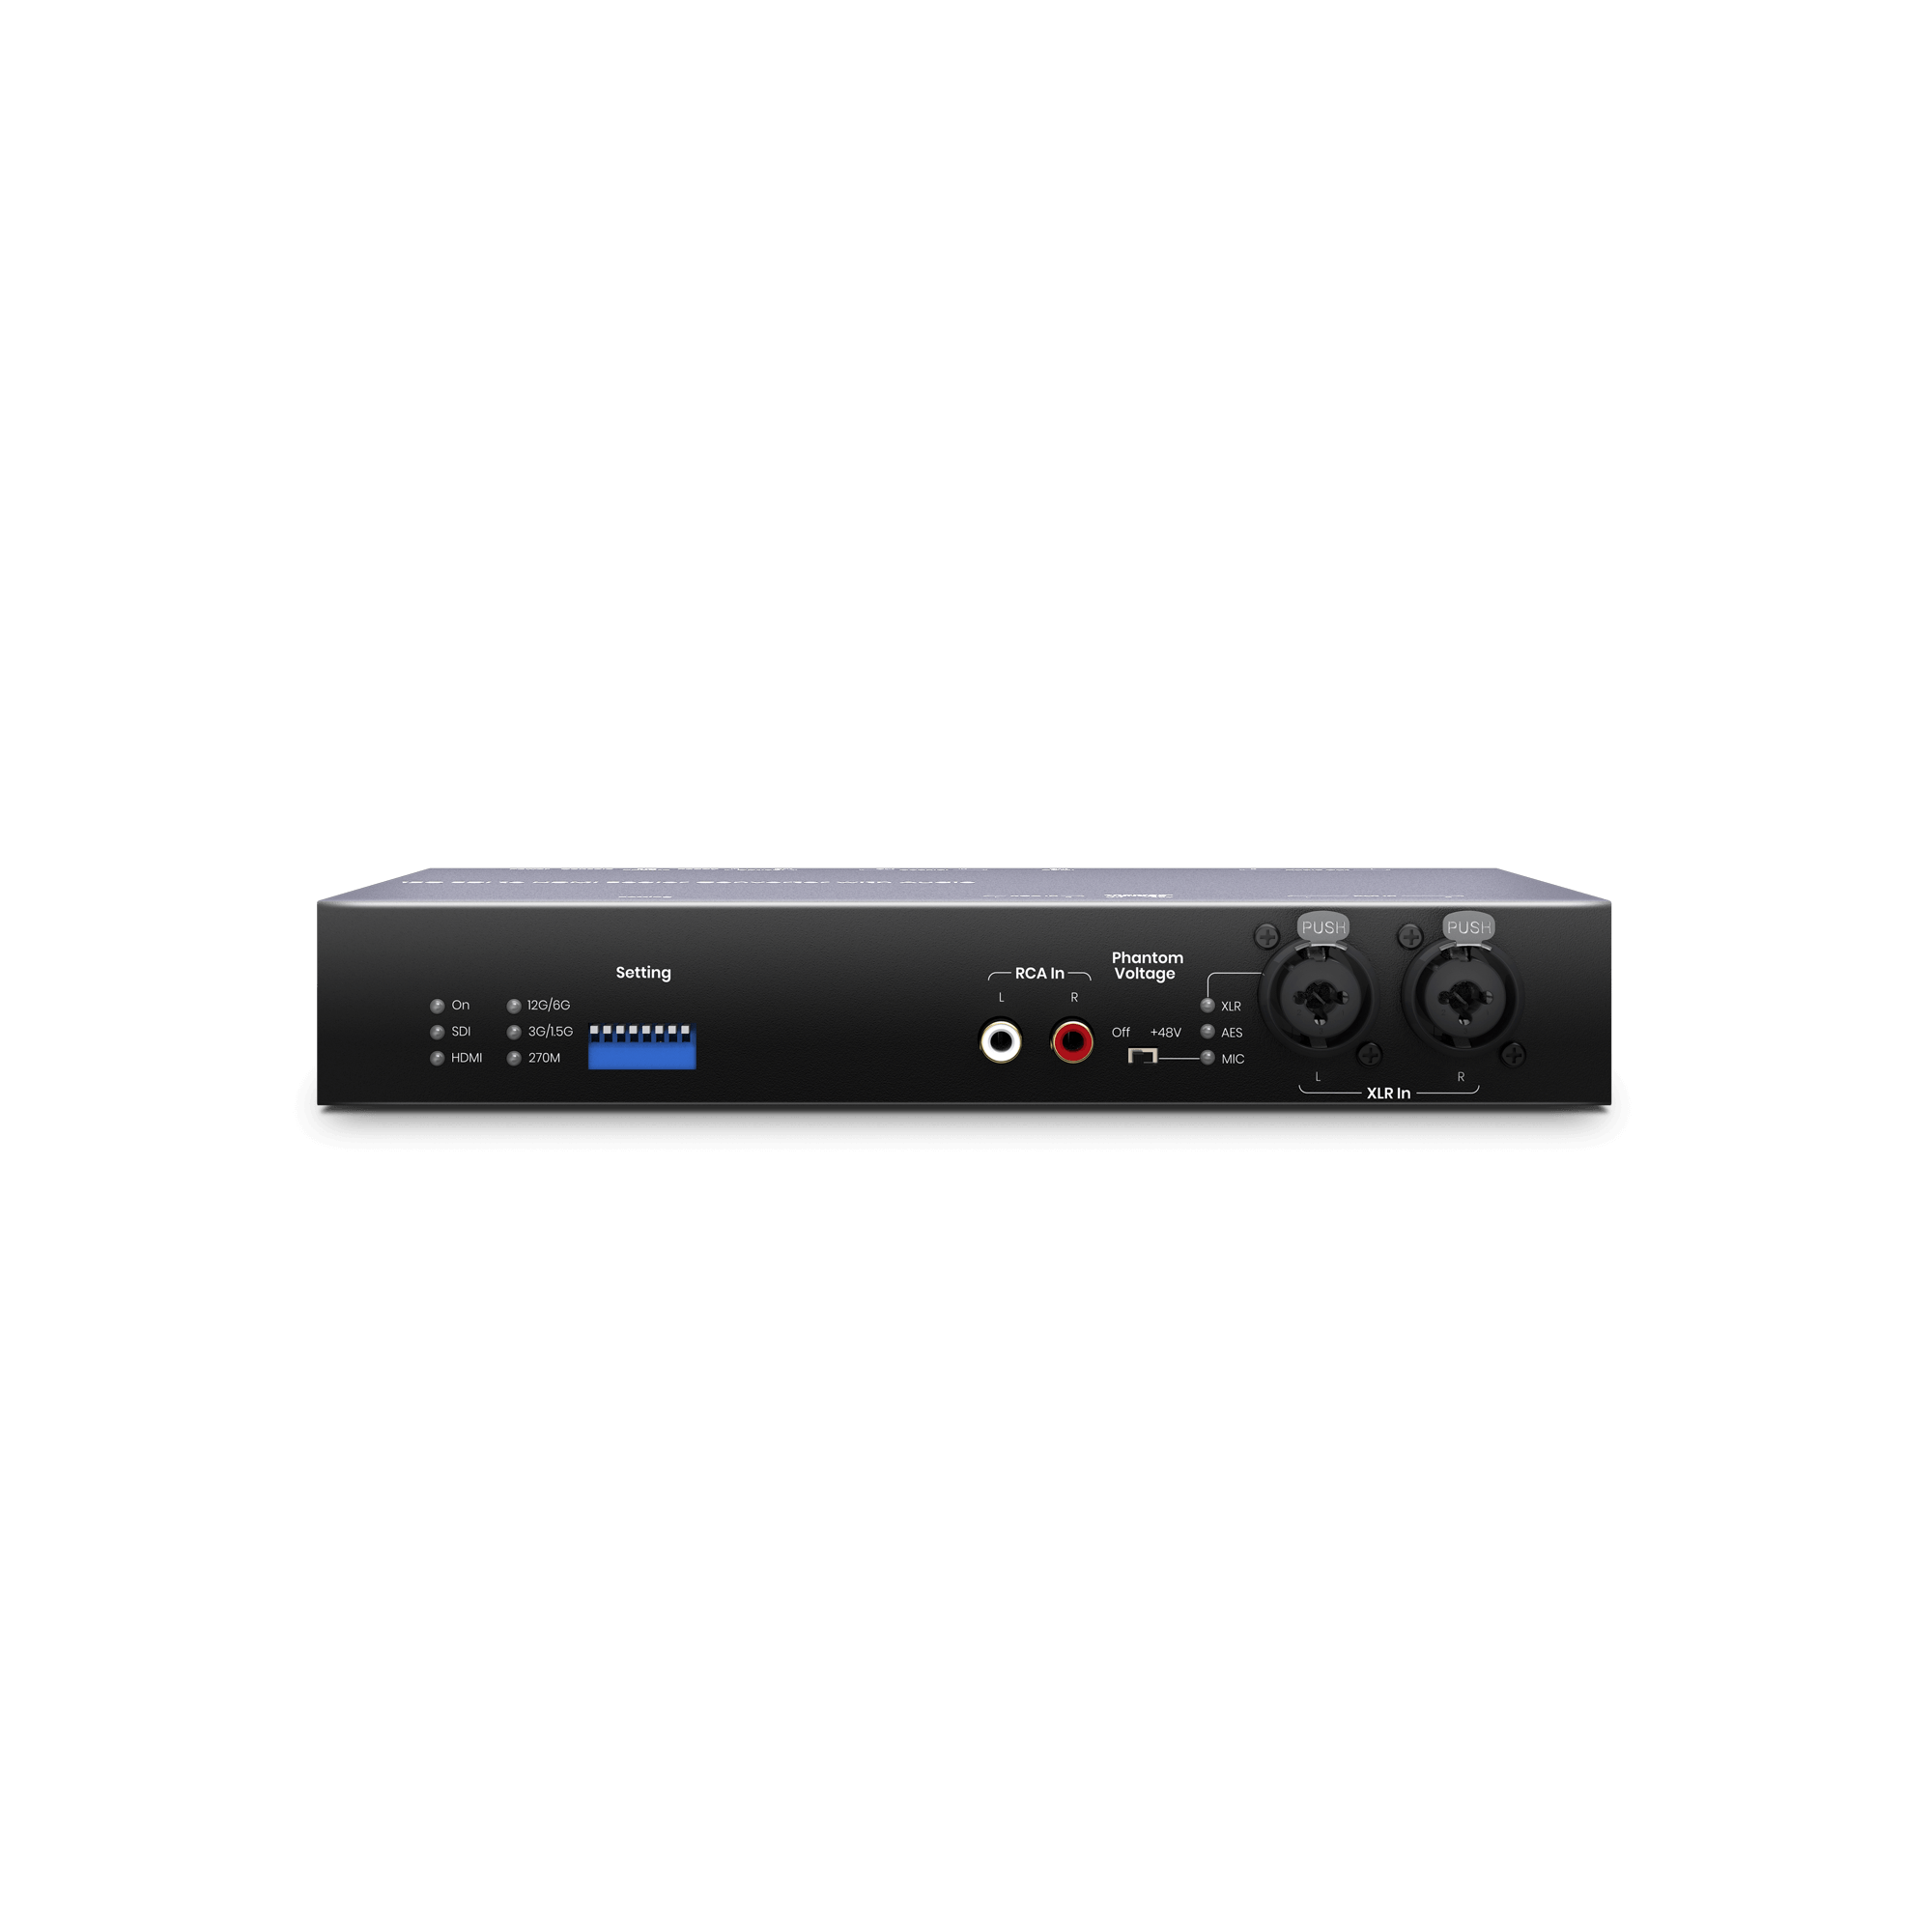 12G-SDI to HDMI 2.0 Converter with Audio Embedder/Extractor